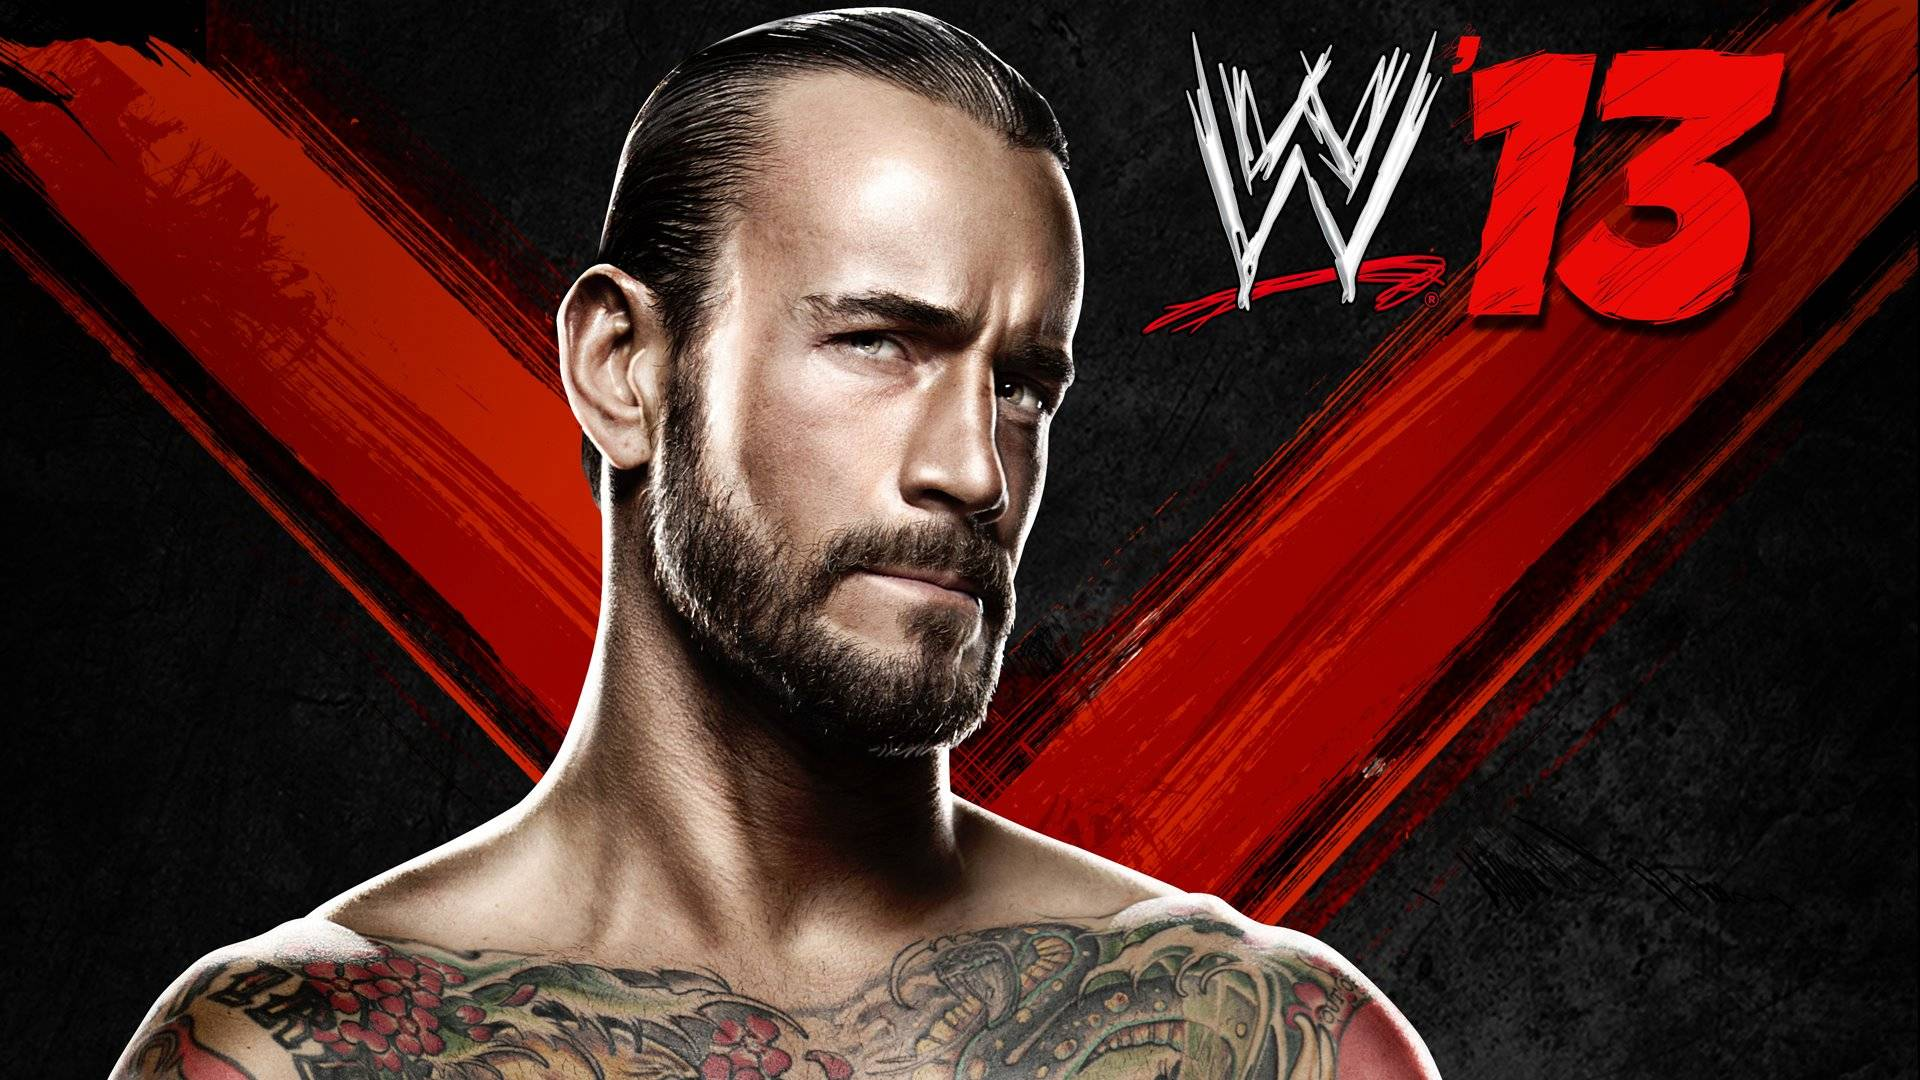 WWE 13 Wallpapers in HD GamingBoltcom Video Game News Reviews 1920x1080